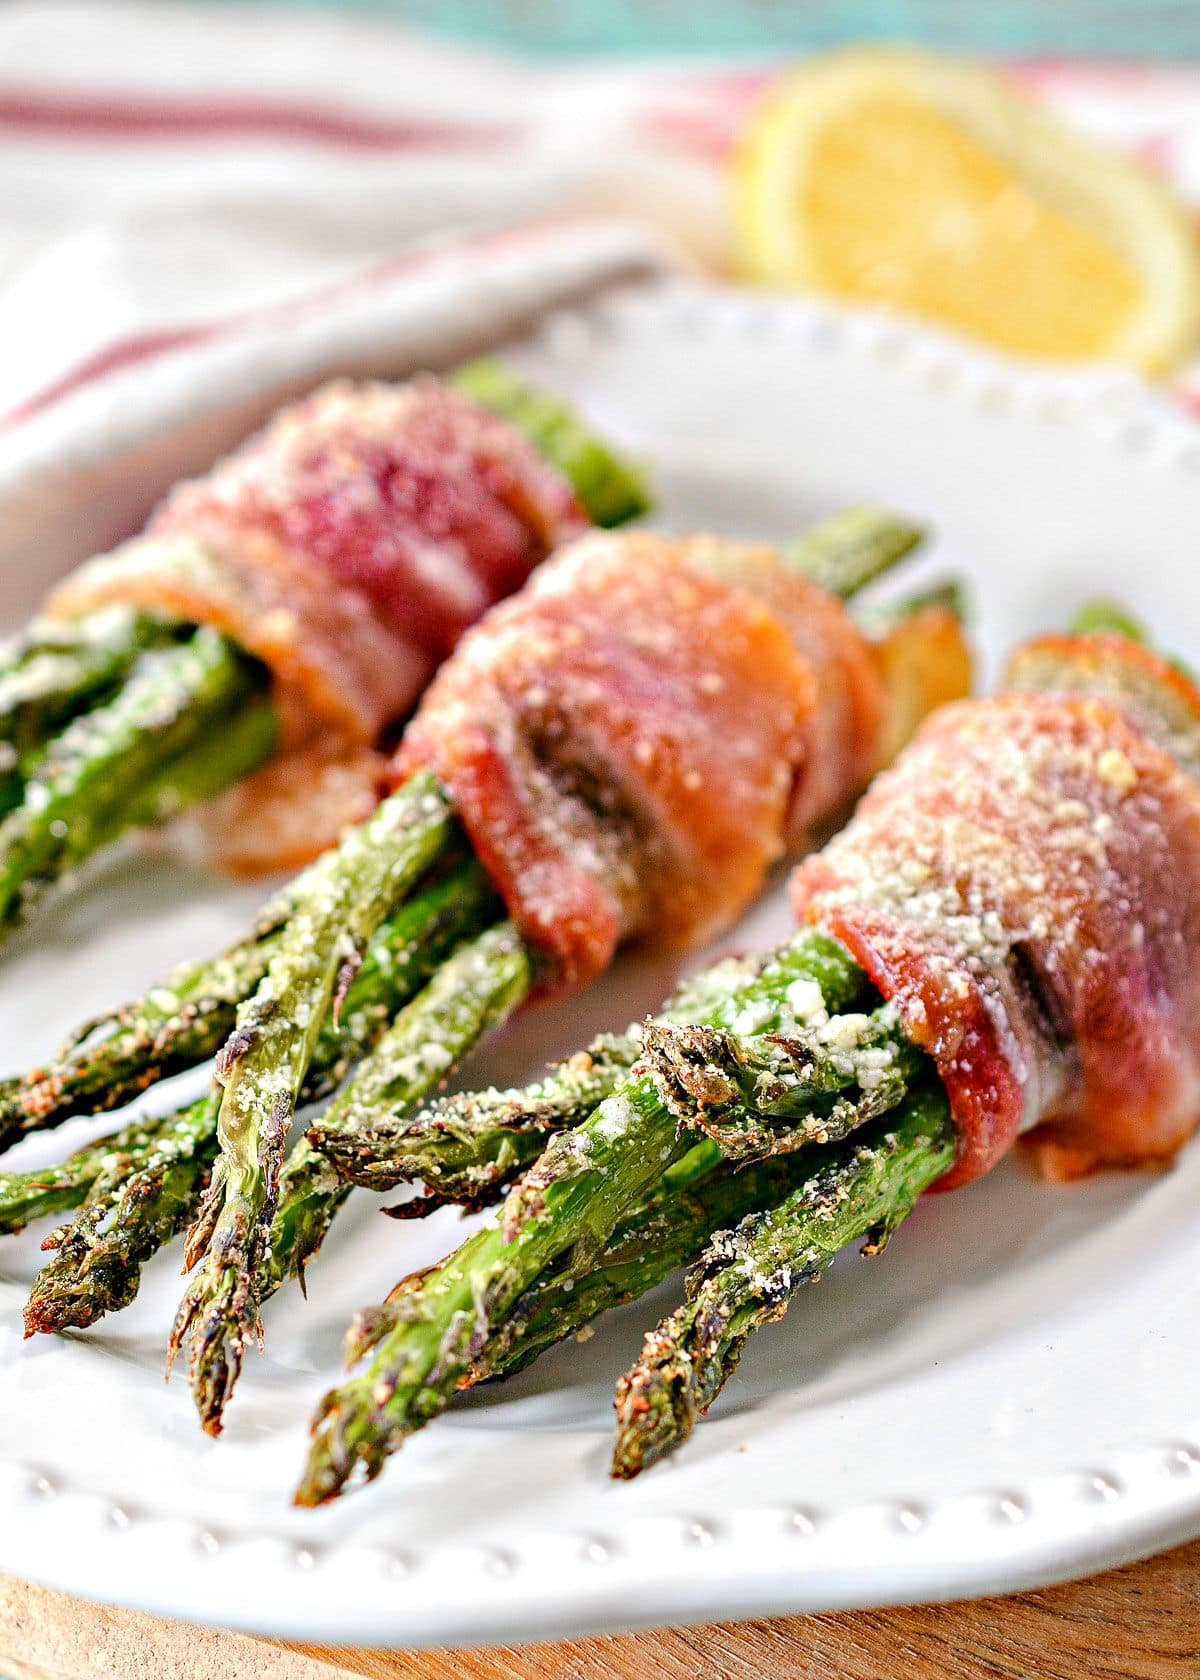 bacon wrapped asparagus made in oven or air fryer